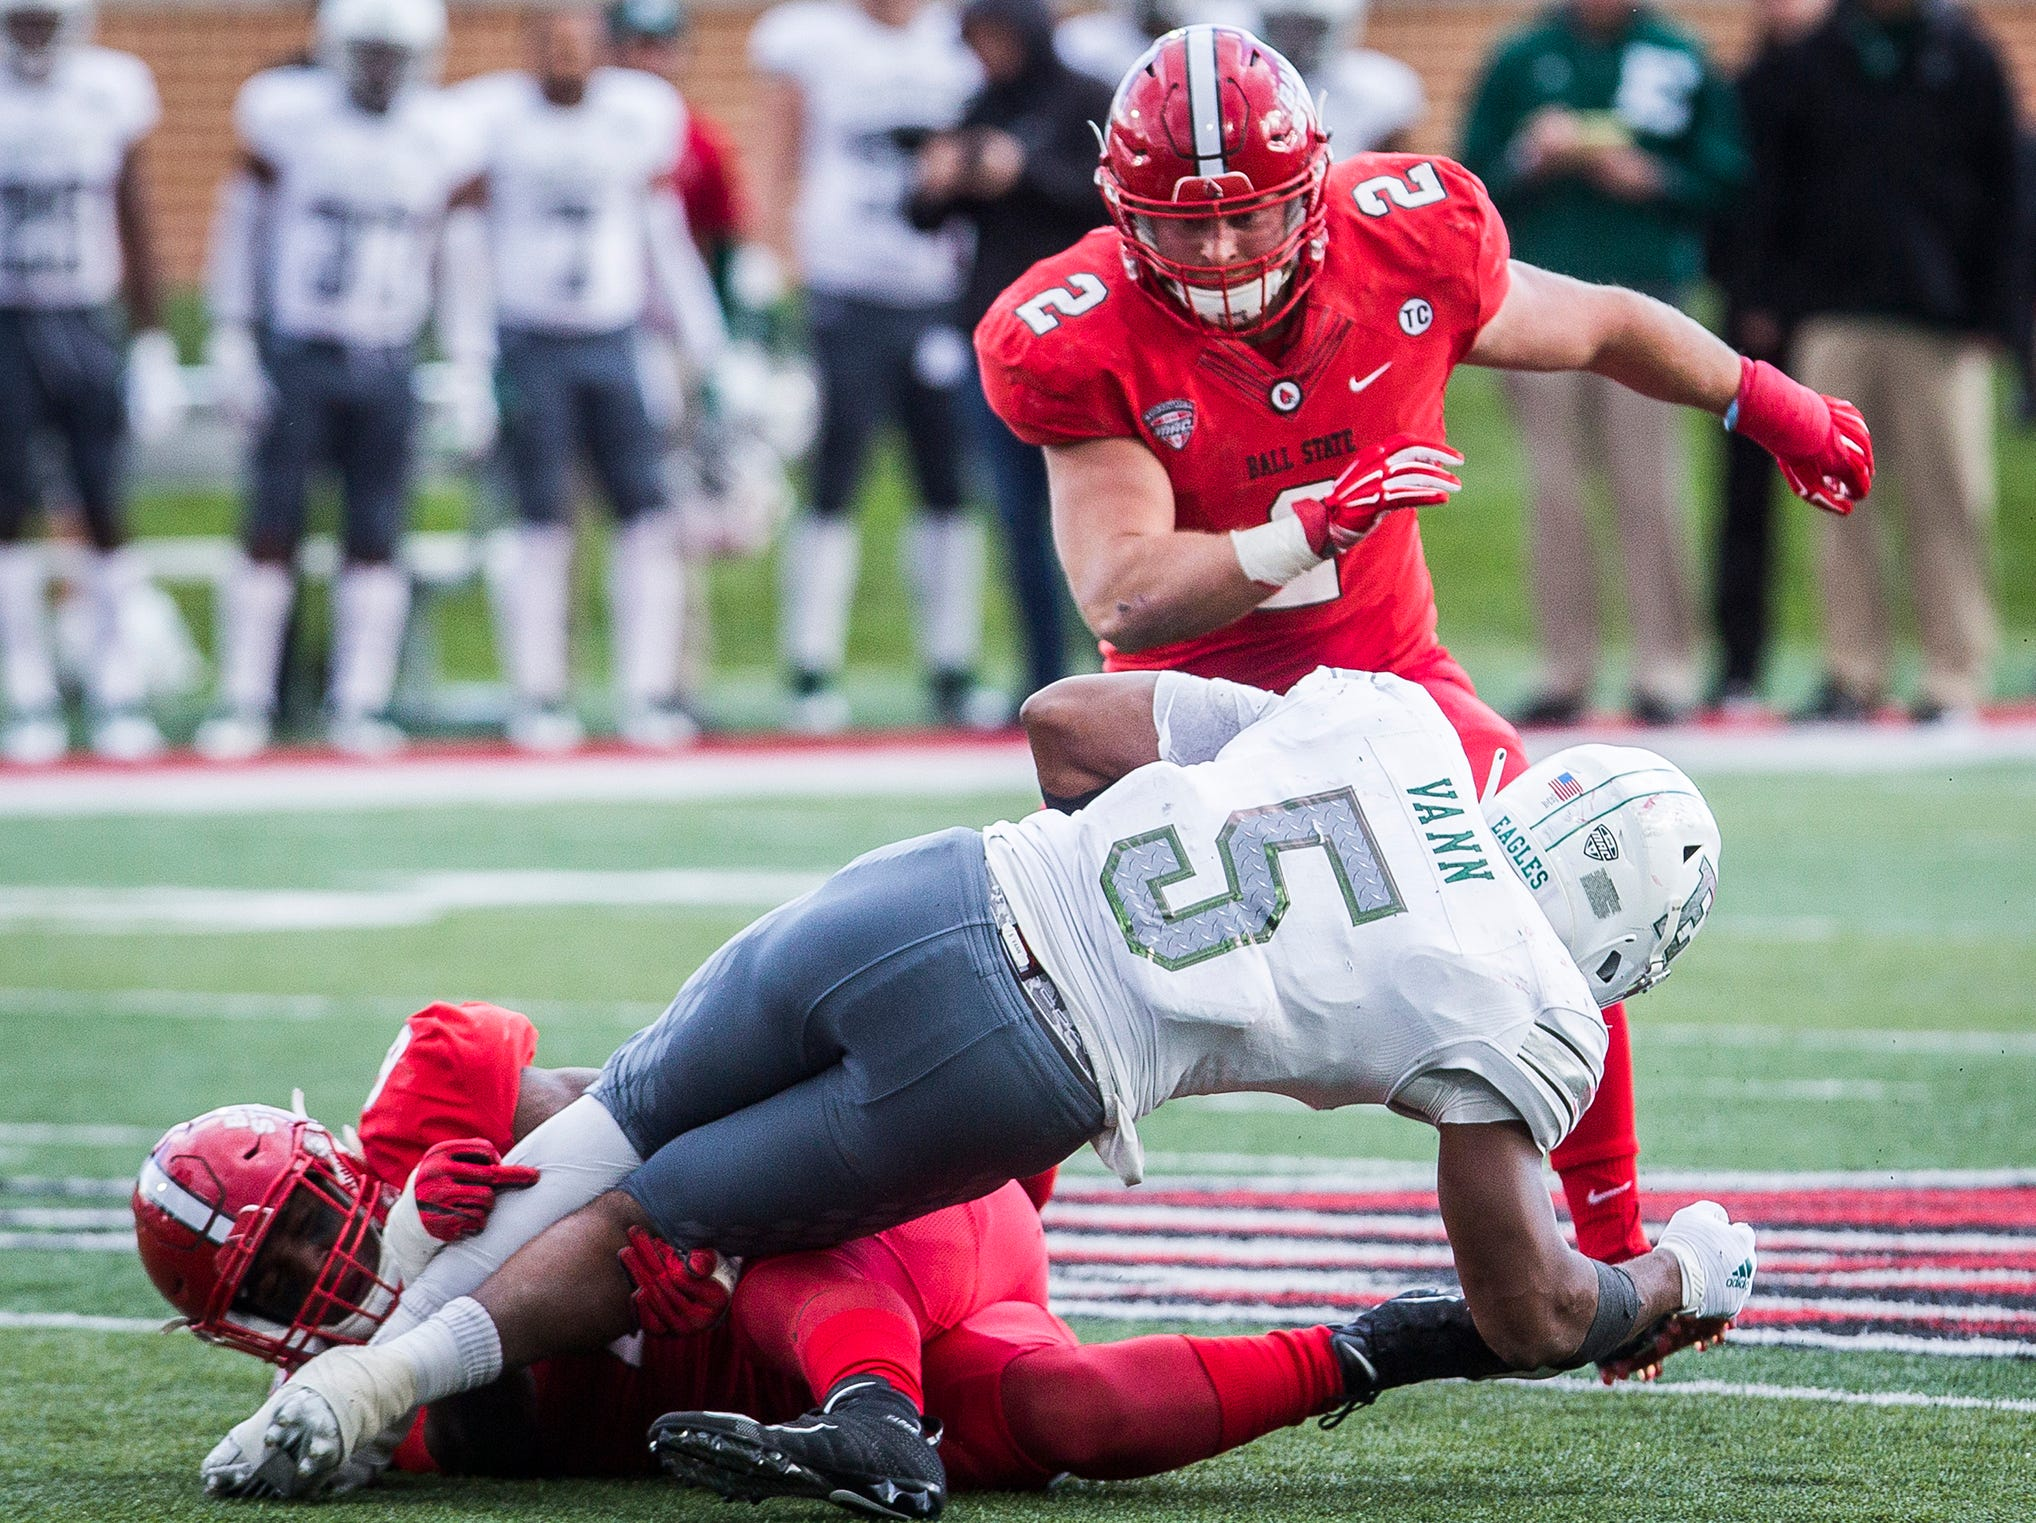 Ball State faces off against Eastern Michigan during their game at Scheumann Stadium Saturday, Oct. 20, 2018.